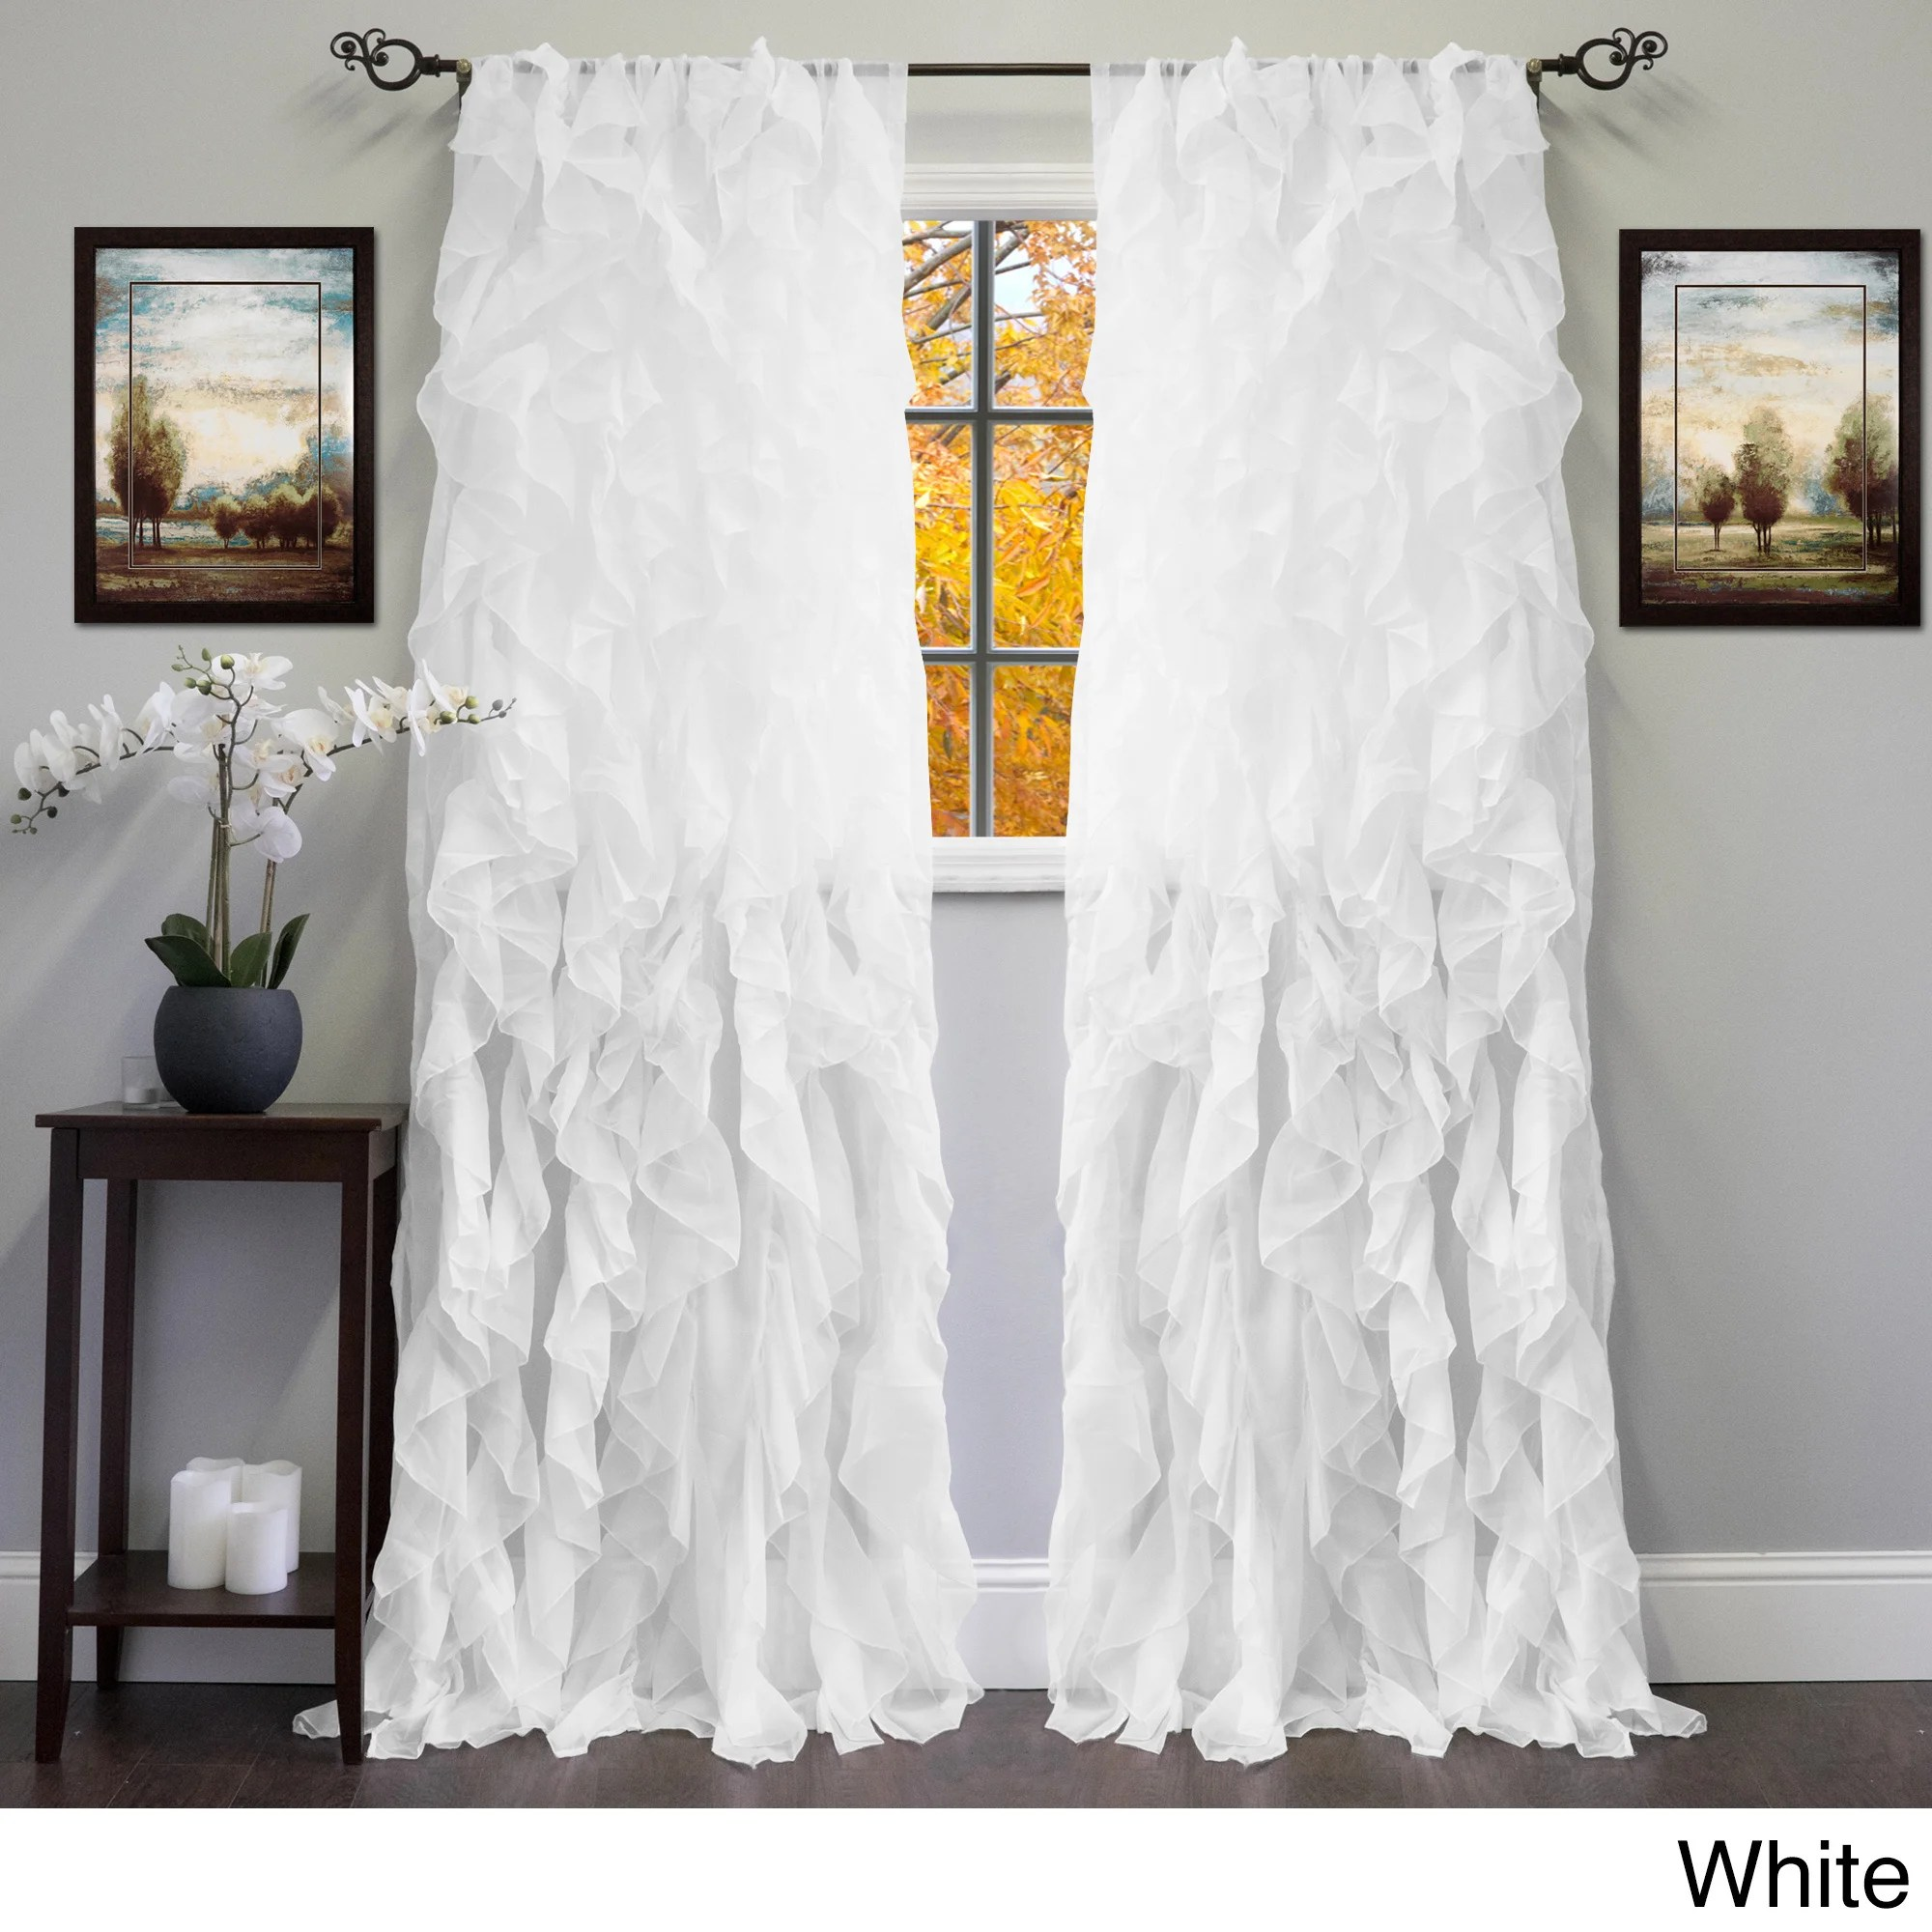 Ruffle Curtain Panel Sheer Voile Ruffled Tier Window Curtain Panel 50 X 84